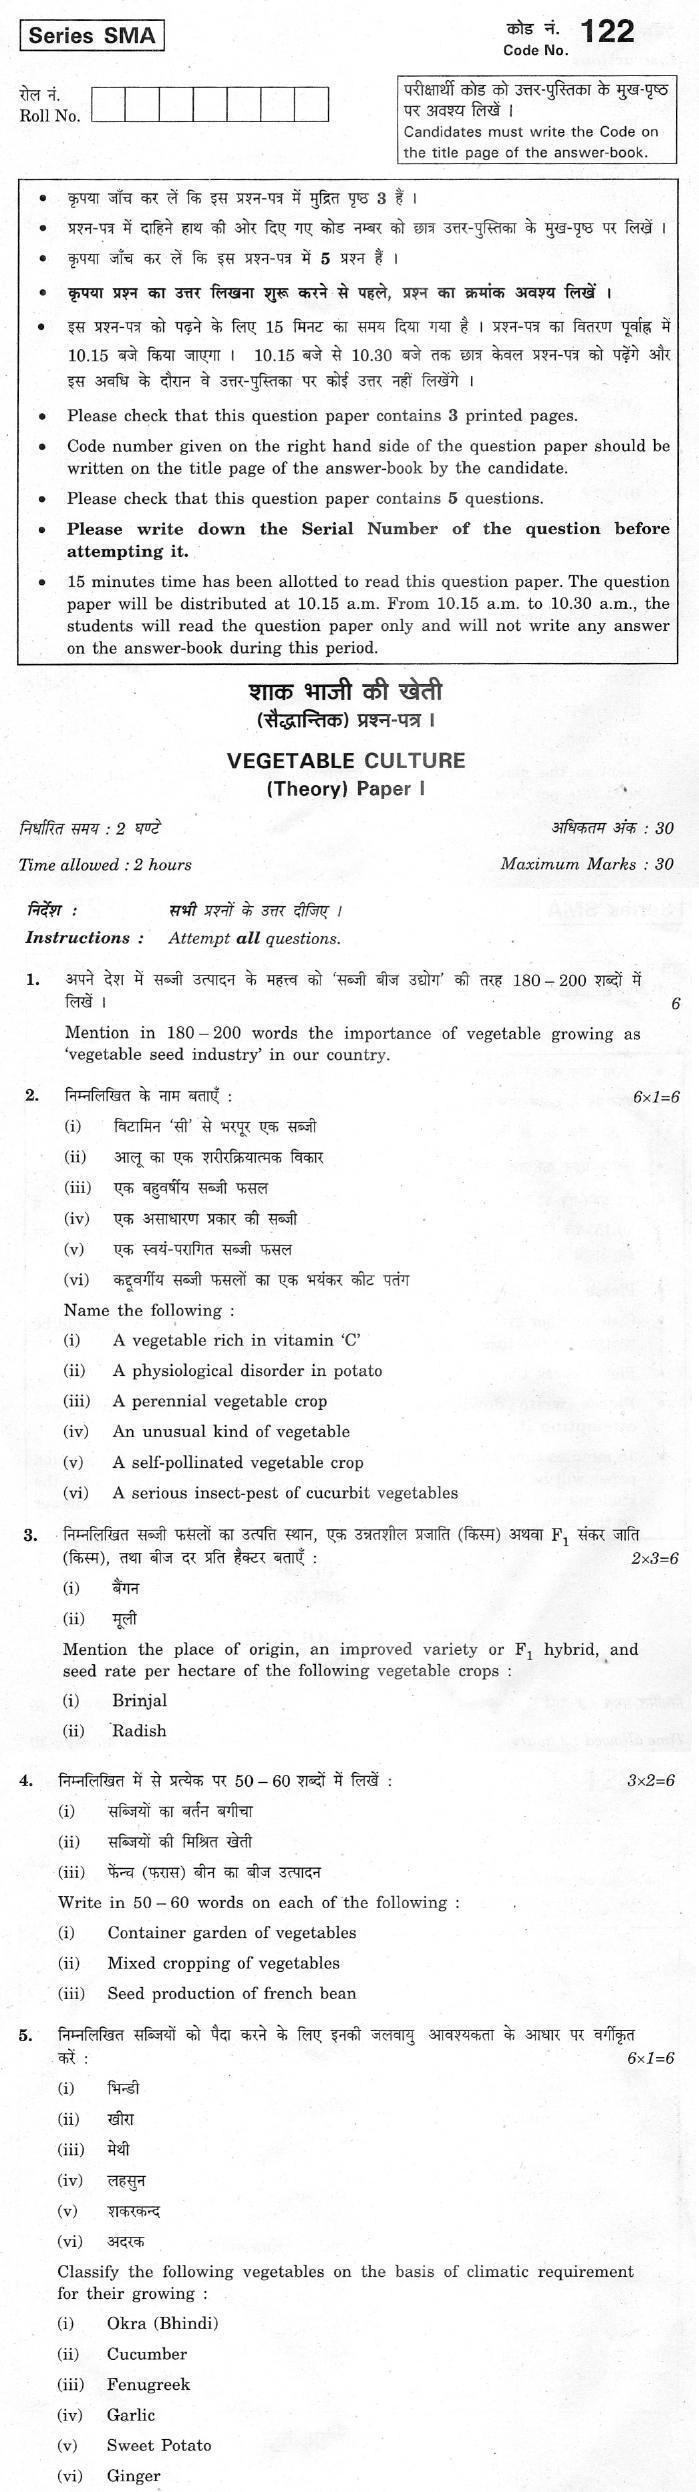 CBSE Class XII Previous Year Question Paper 2012 Vegetable Culture (Paper I)